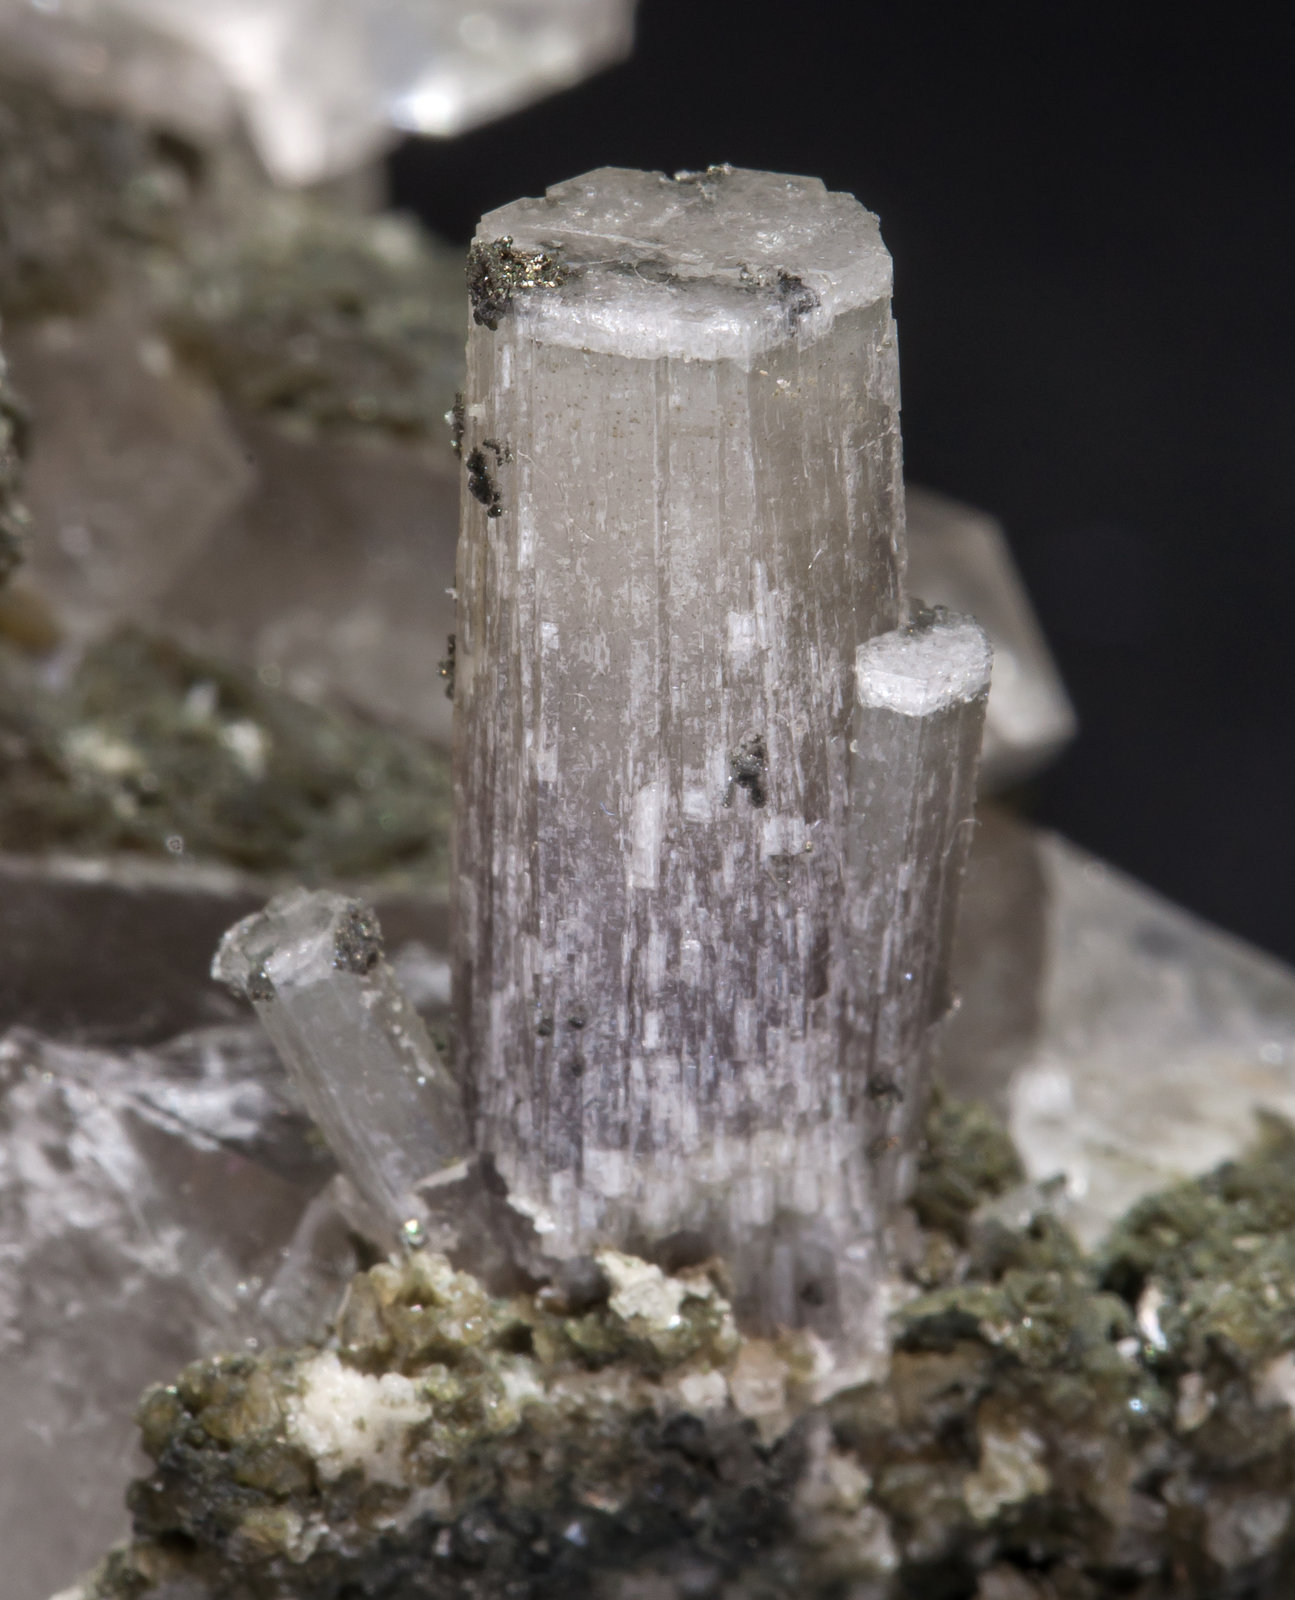 specimens/s_imagesAL5/Fluorapatite-NJ36AL5d.jpg